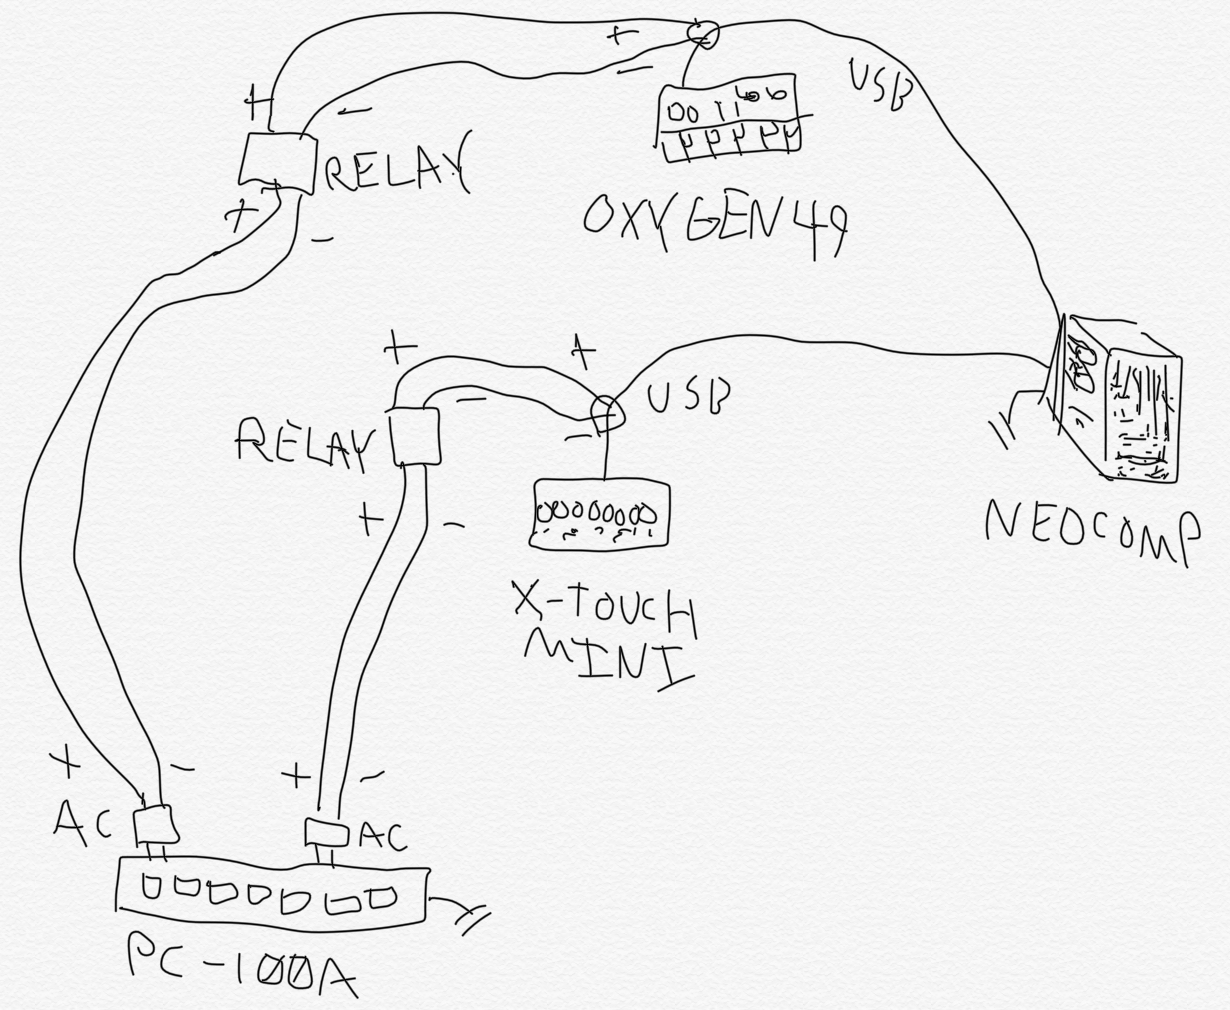 Installing A Relay Switch For Music Studio Hardware Mixer Jaxx Positive Switched Schematic Diagram Its Good Idea To Sketch How Youll Wire Things Up Heres My Brainstorming Session When Figuring Out Id Do This